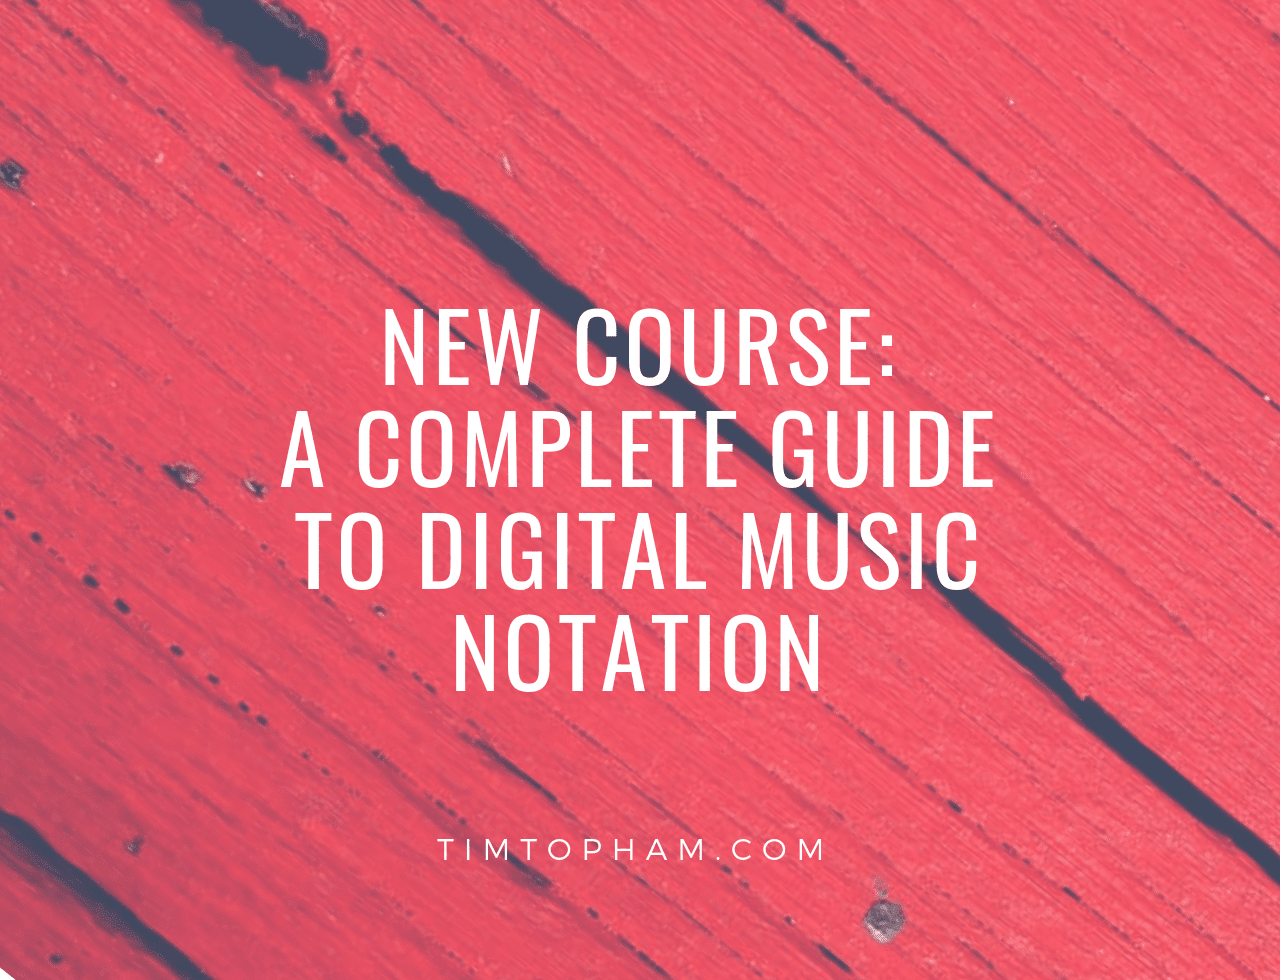 New Course: A Complete Guide to Digital Music Notation